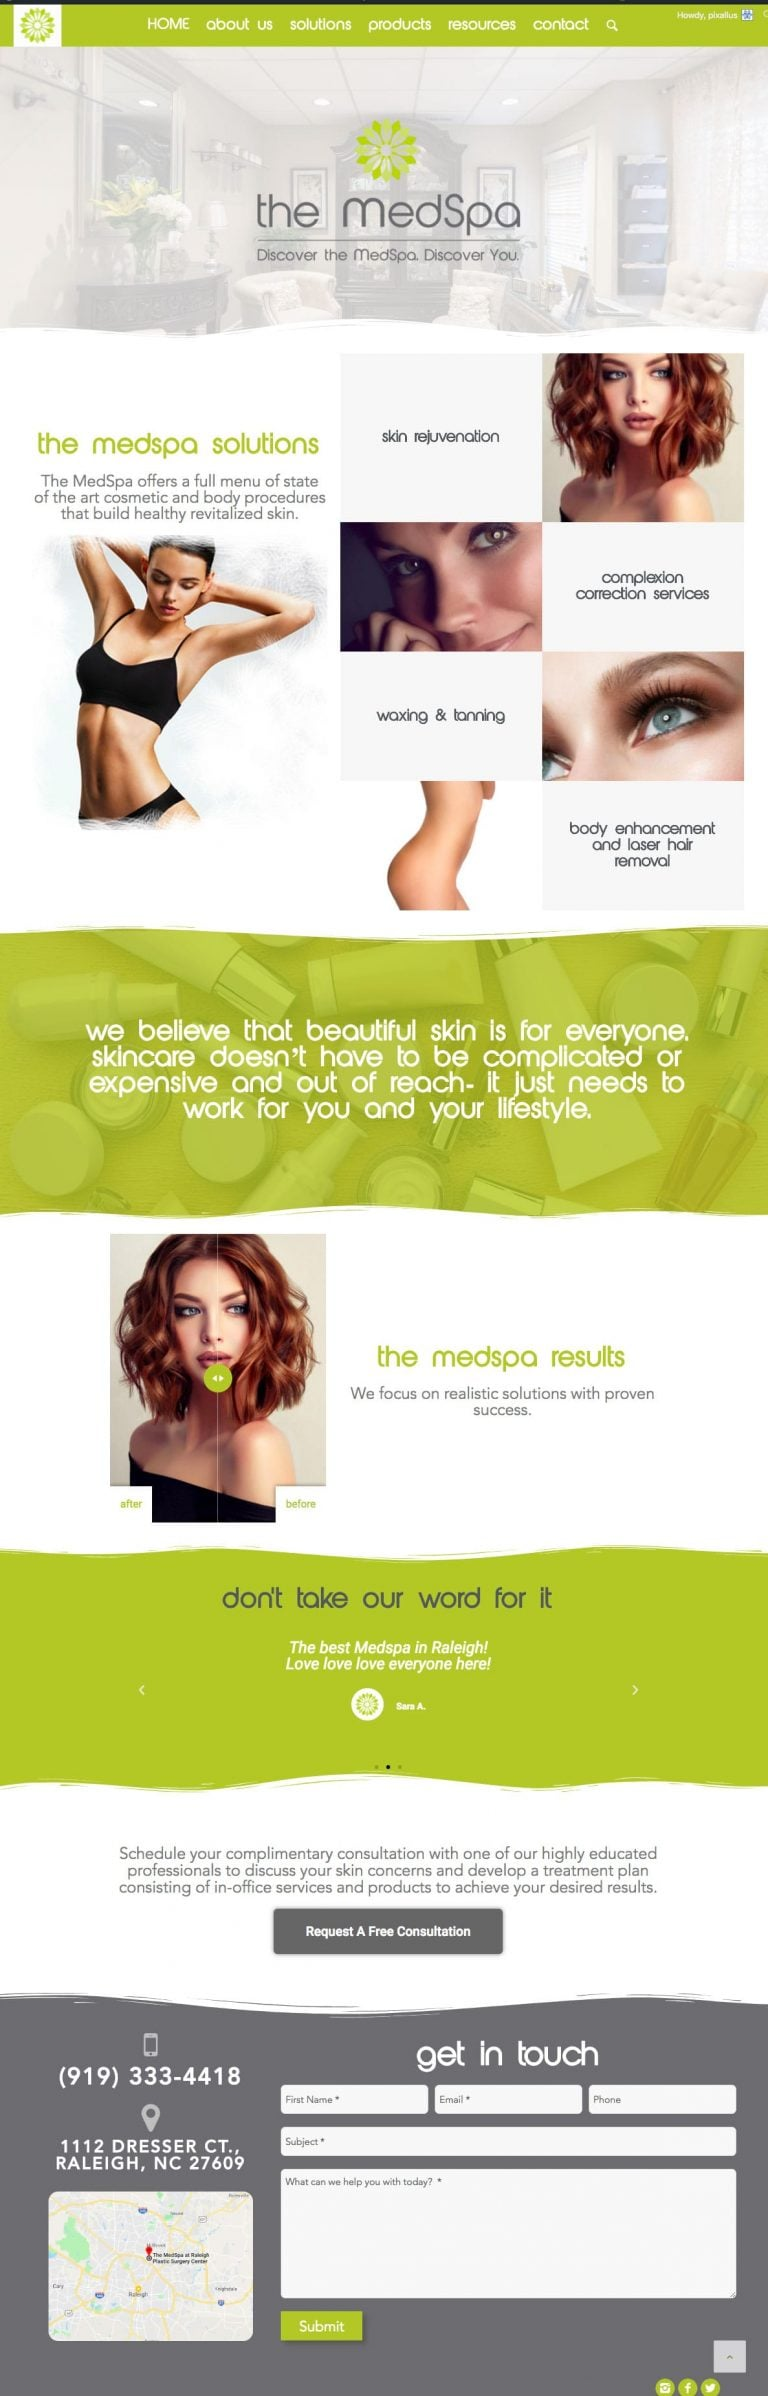 pixallus - the medspa raleigh